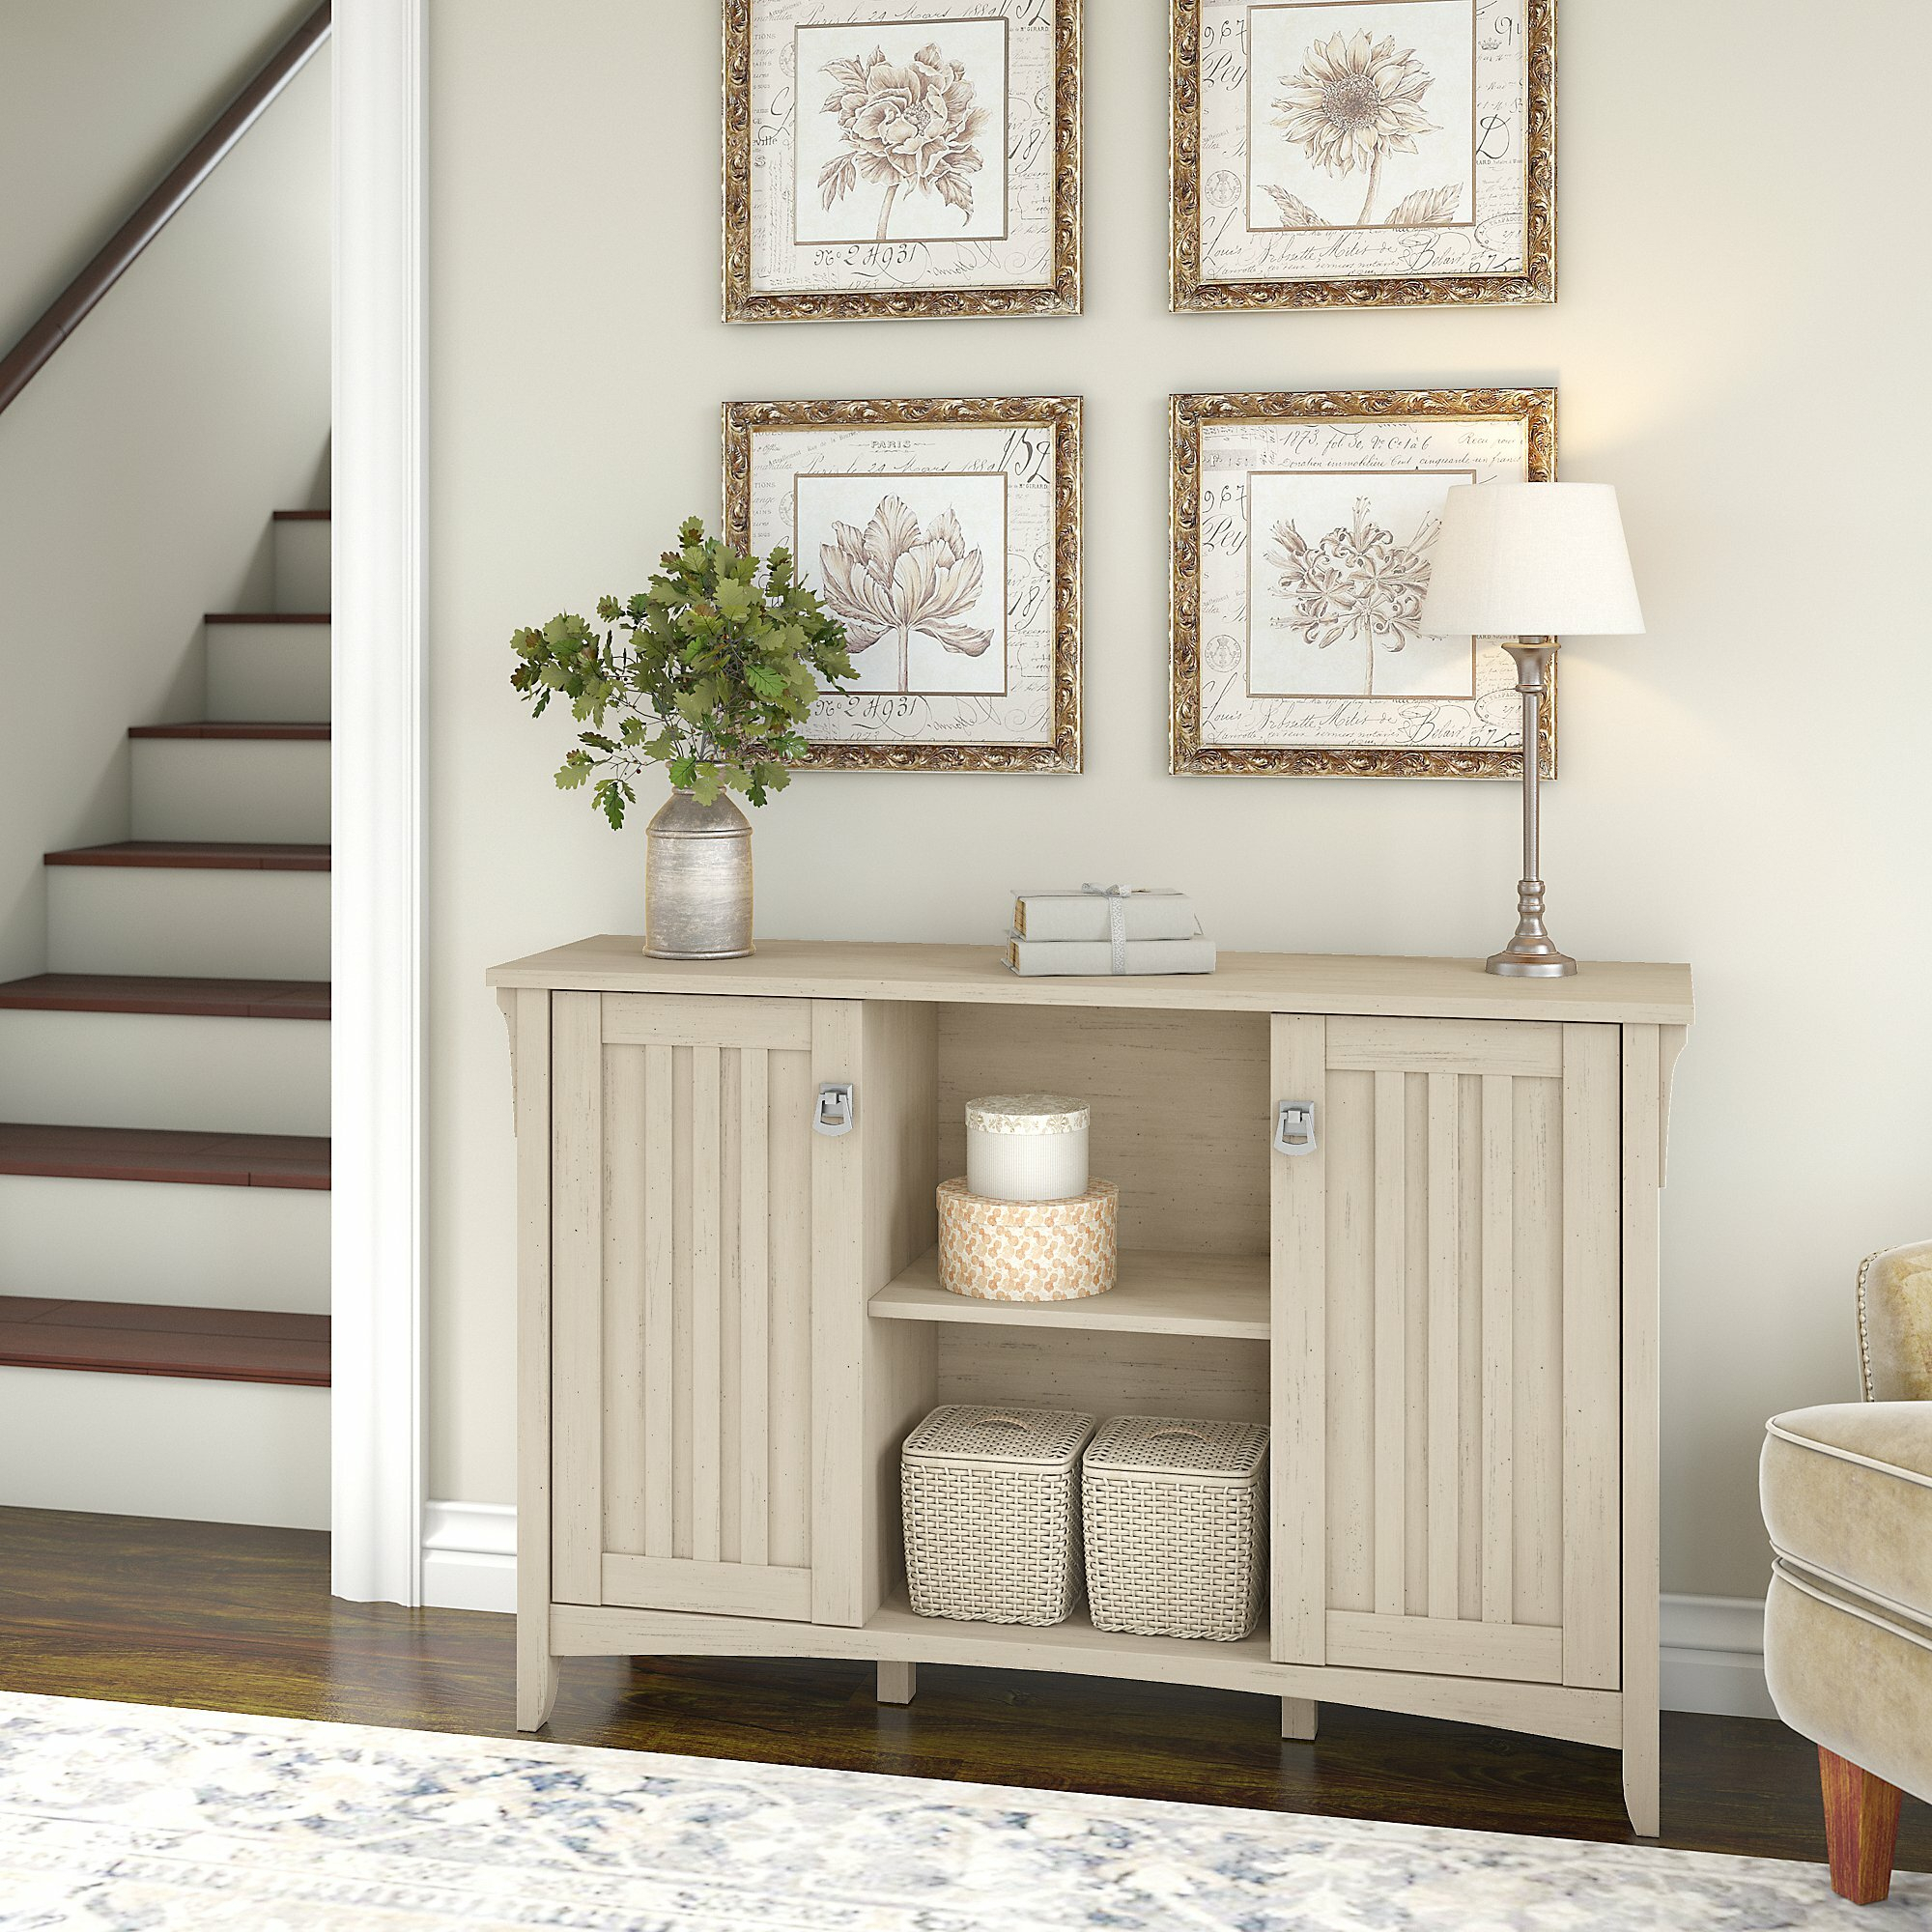 Farmhouse & Rustic Three Posts Sideboards & Buffets | Birch Lane Regarding Cazenovia Charnley Sideboards (View 11 of 30)